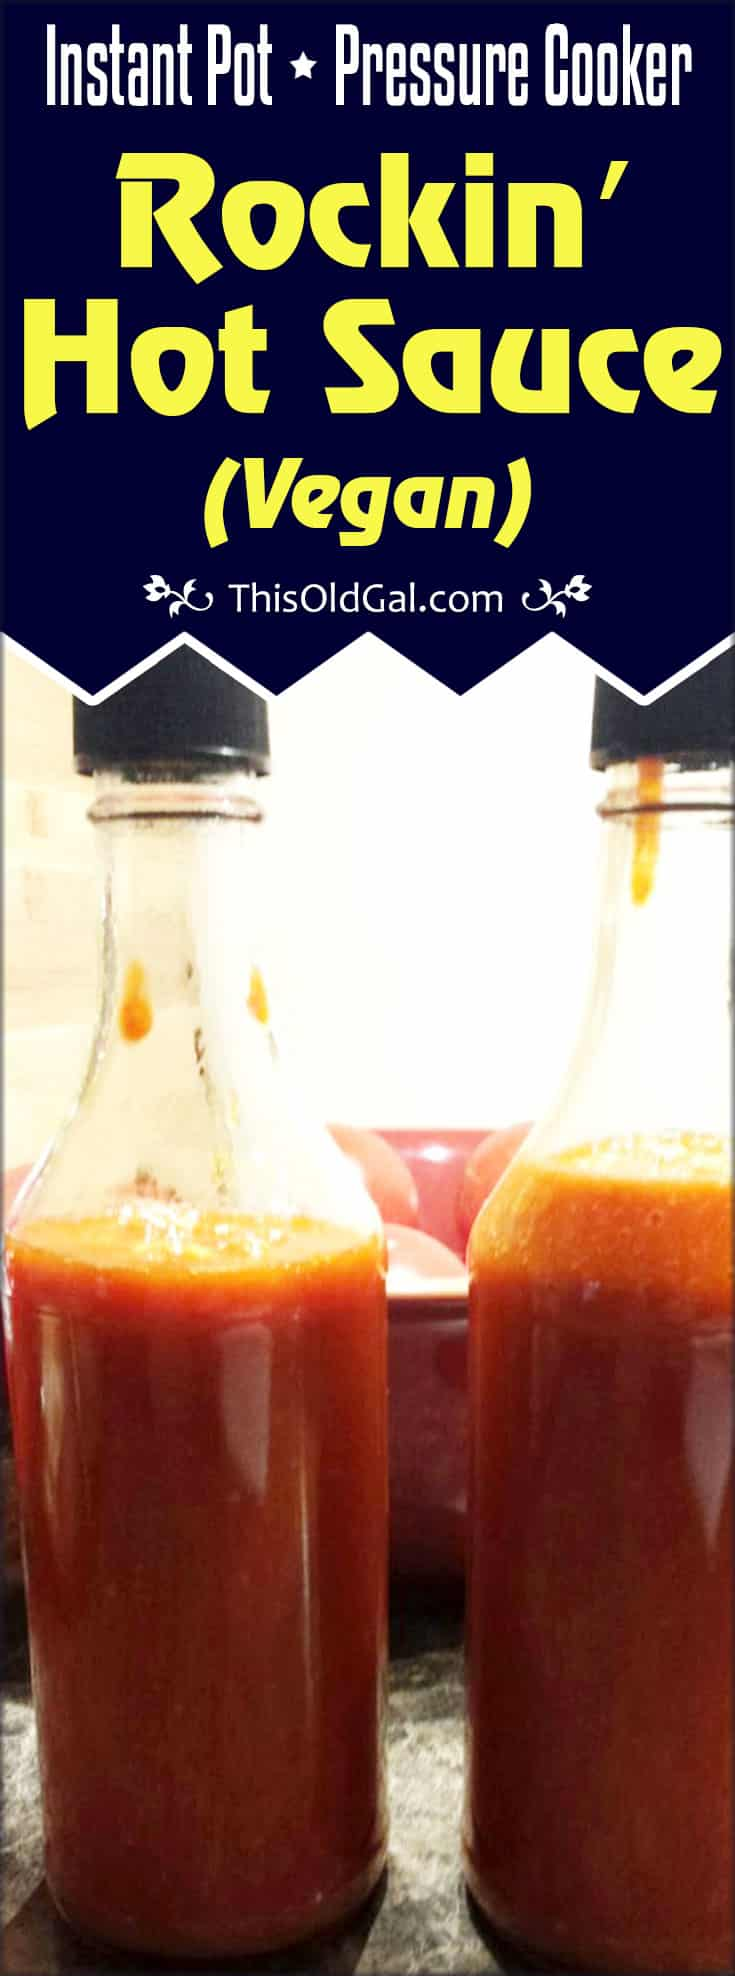 Pressure Cooker Rockin' Hot Sauce (Vegan)